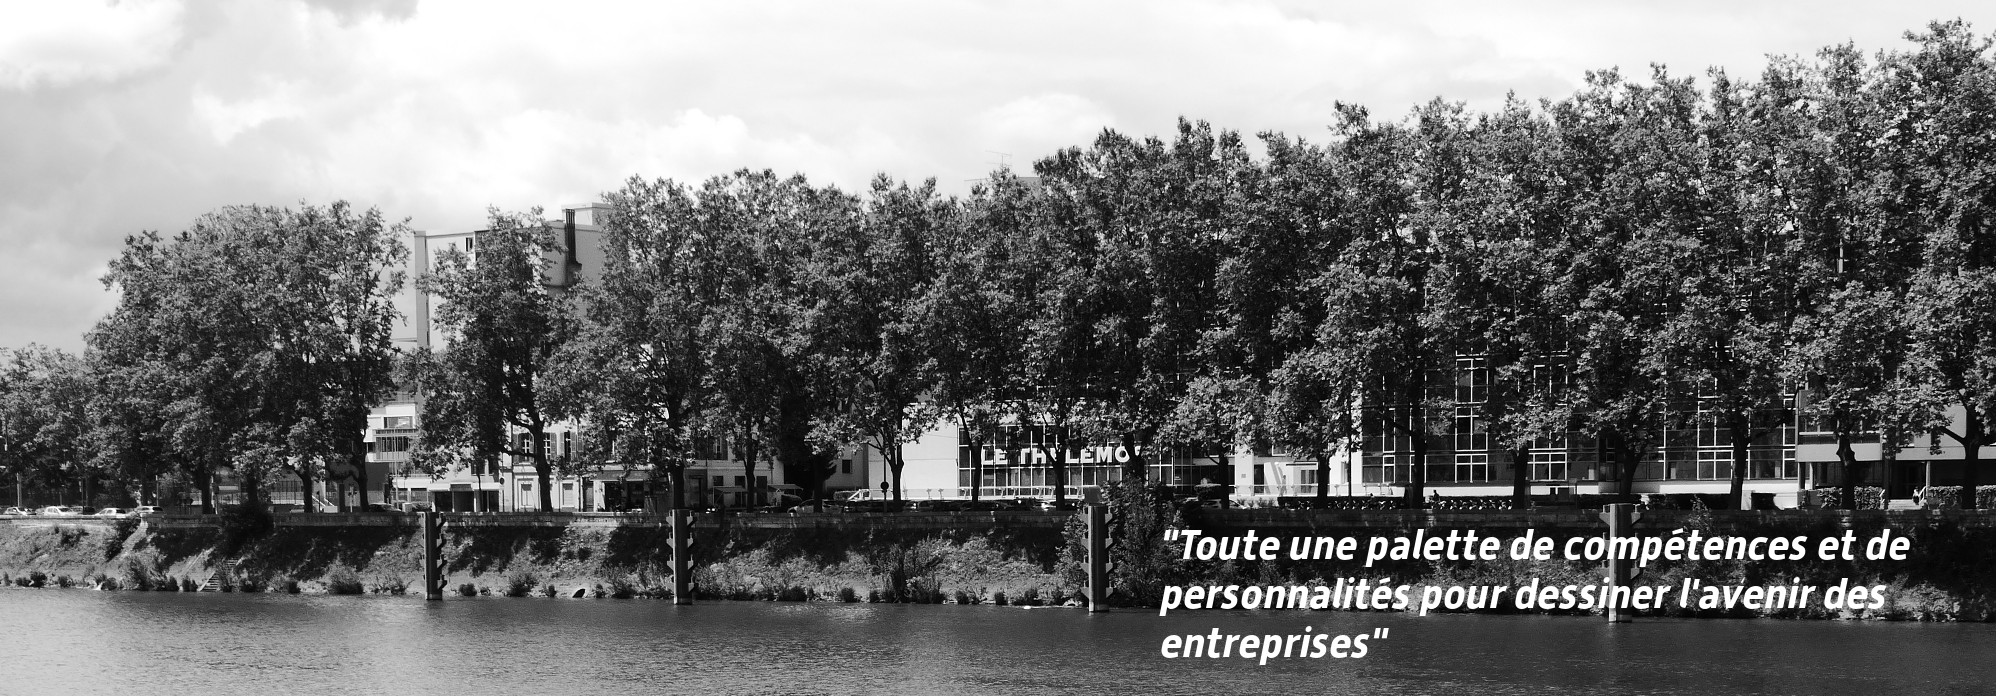 Entreprise D Architecture Lyon orial   chartred accountant in france lyon and paris